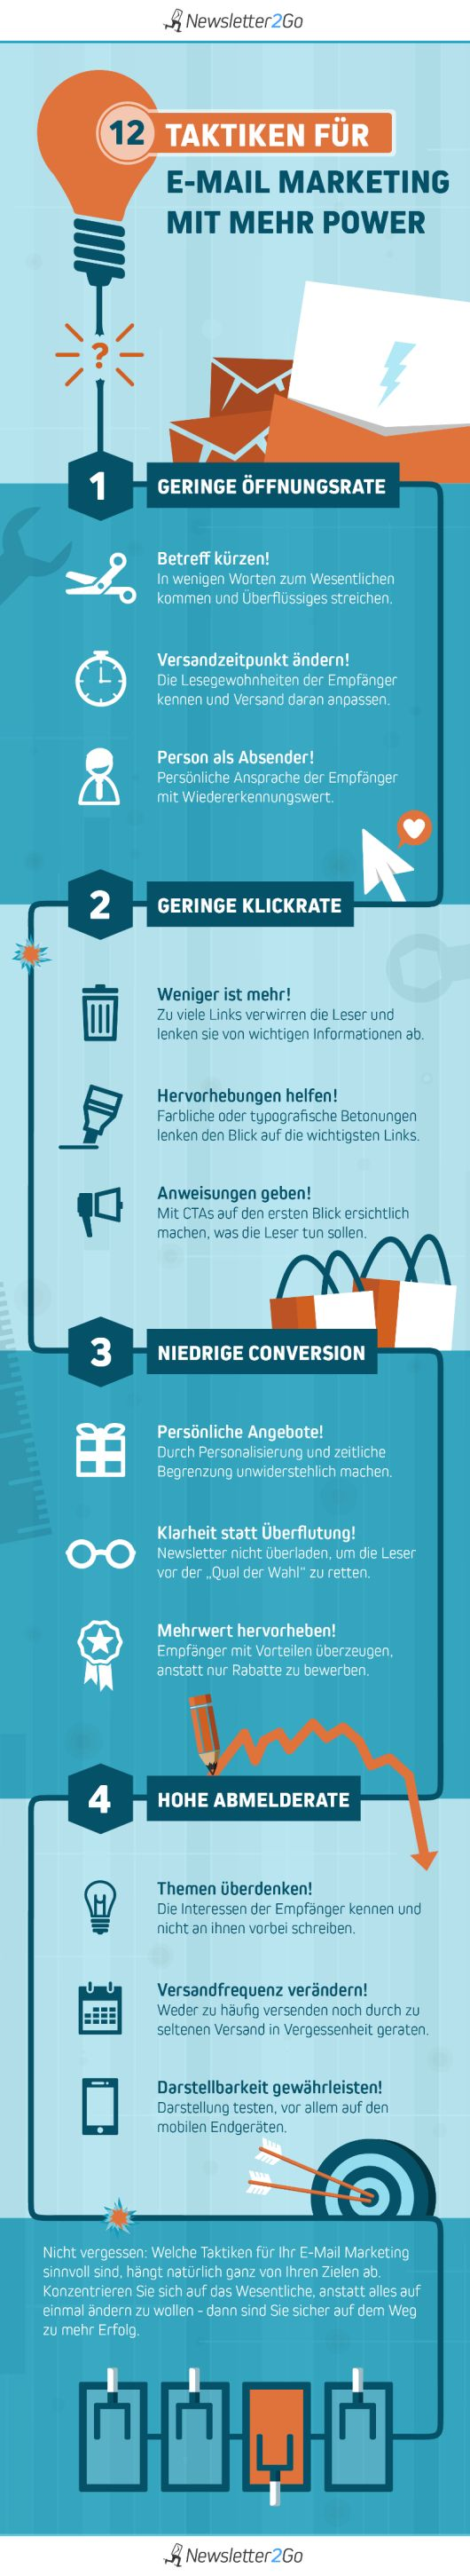 Email Marketing optimieren Infografik 2015 – Karin Windt Webgewandt